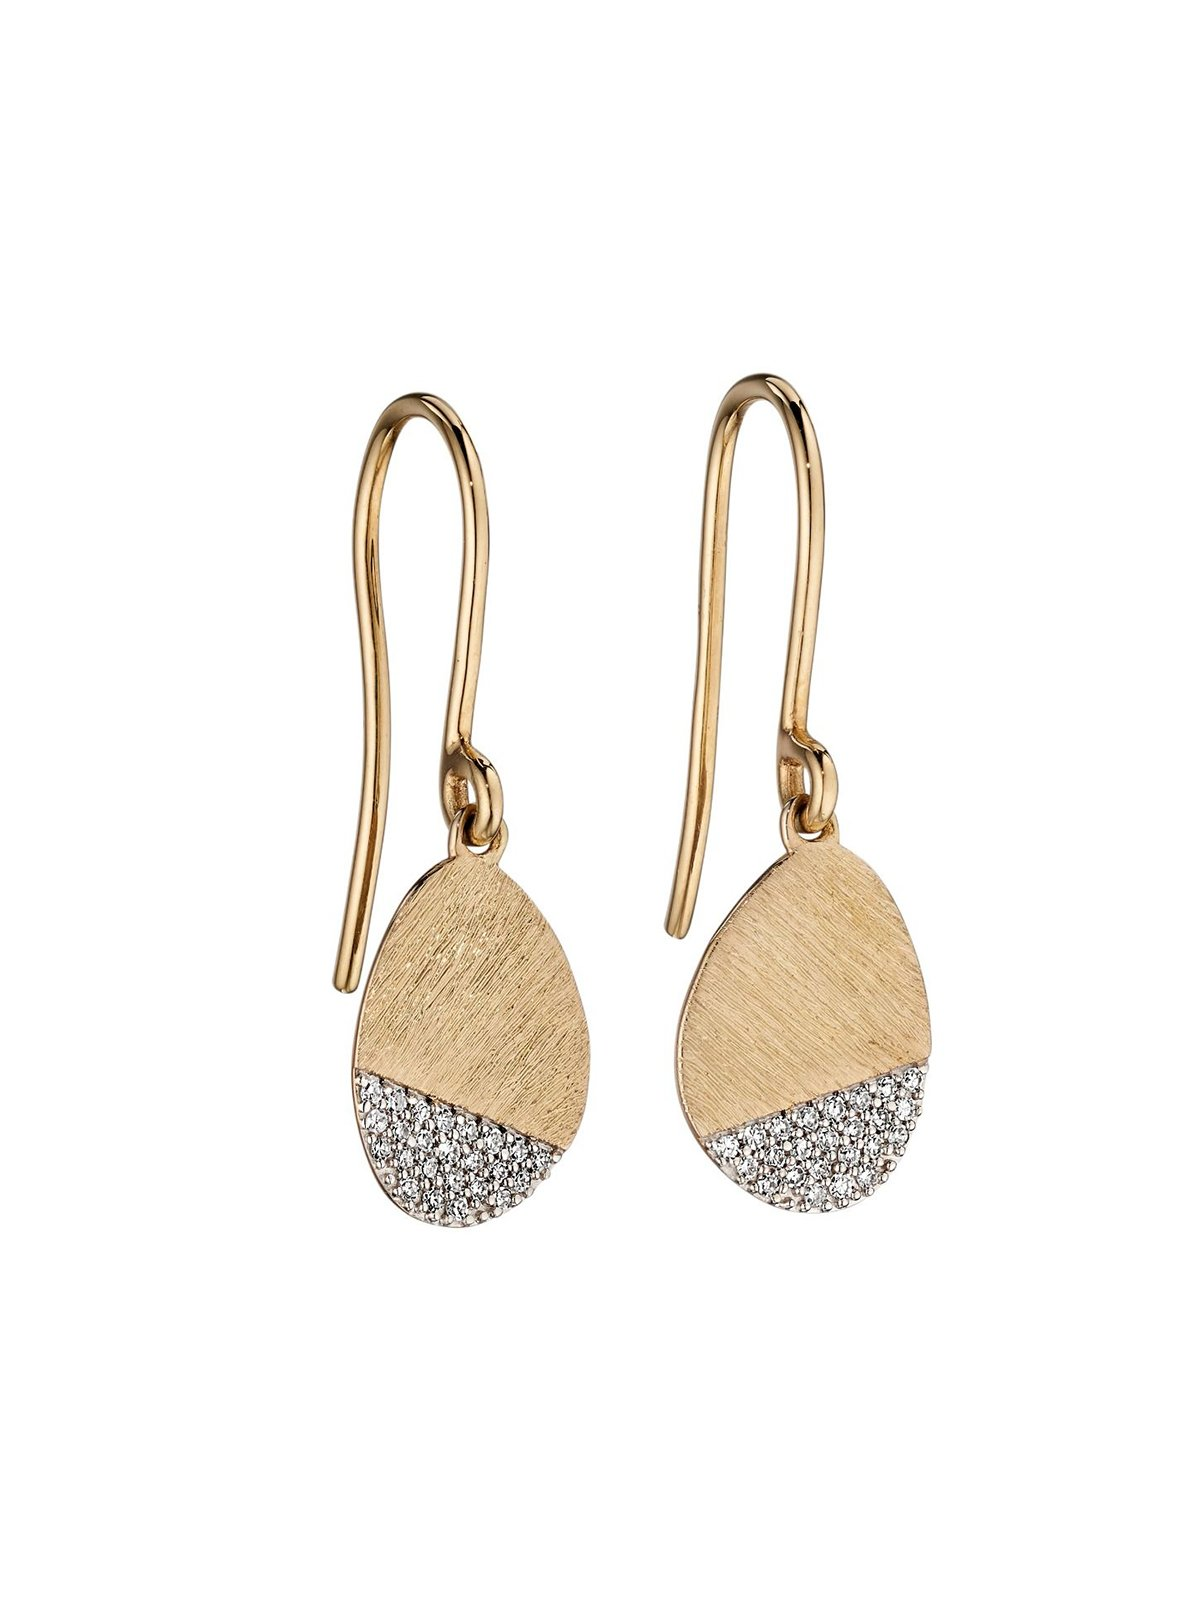 9ct Yellow Gold Diamond Scratch Finish Drop Earrings